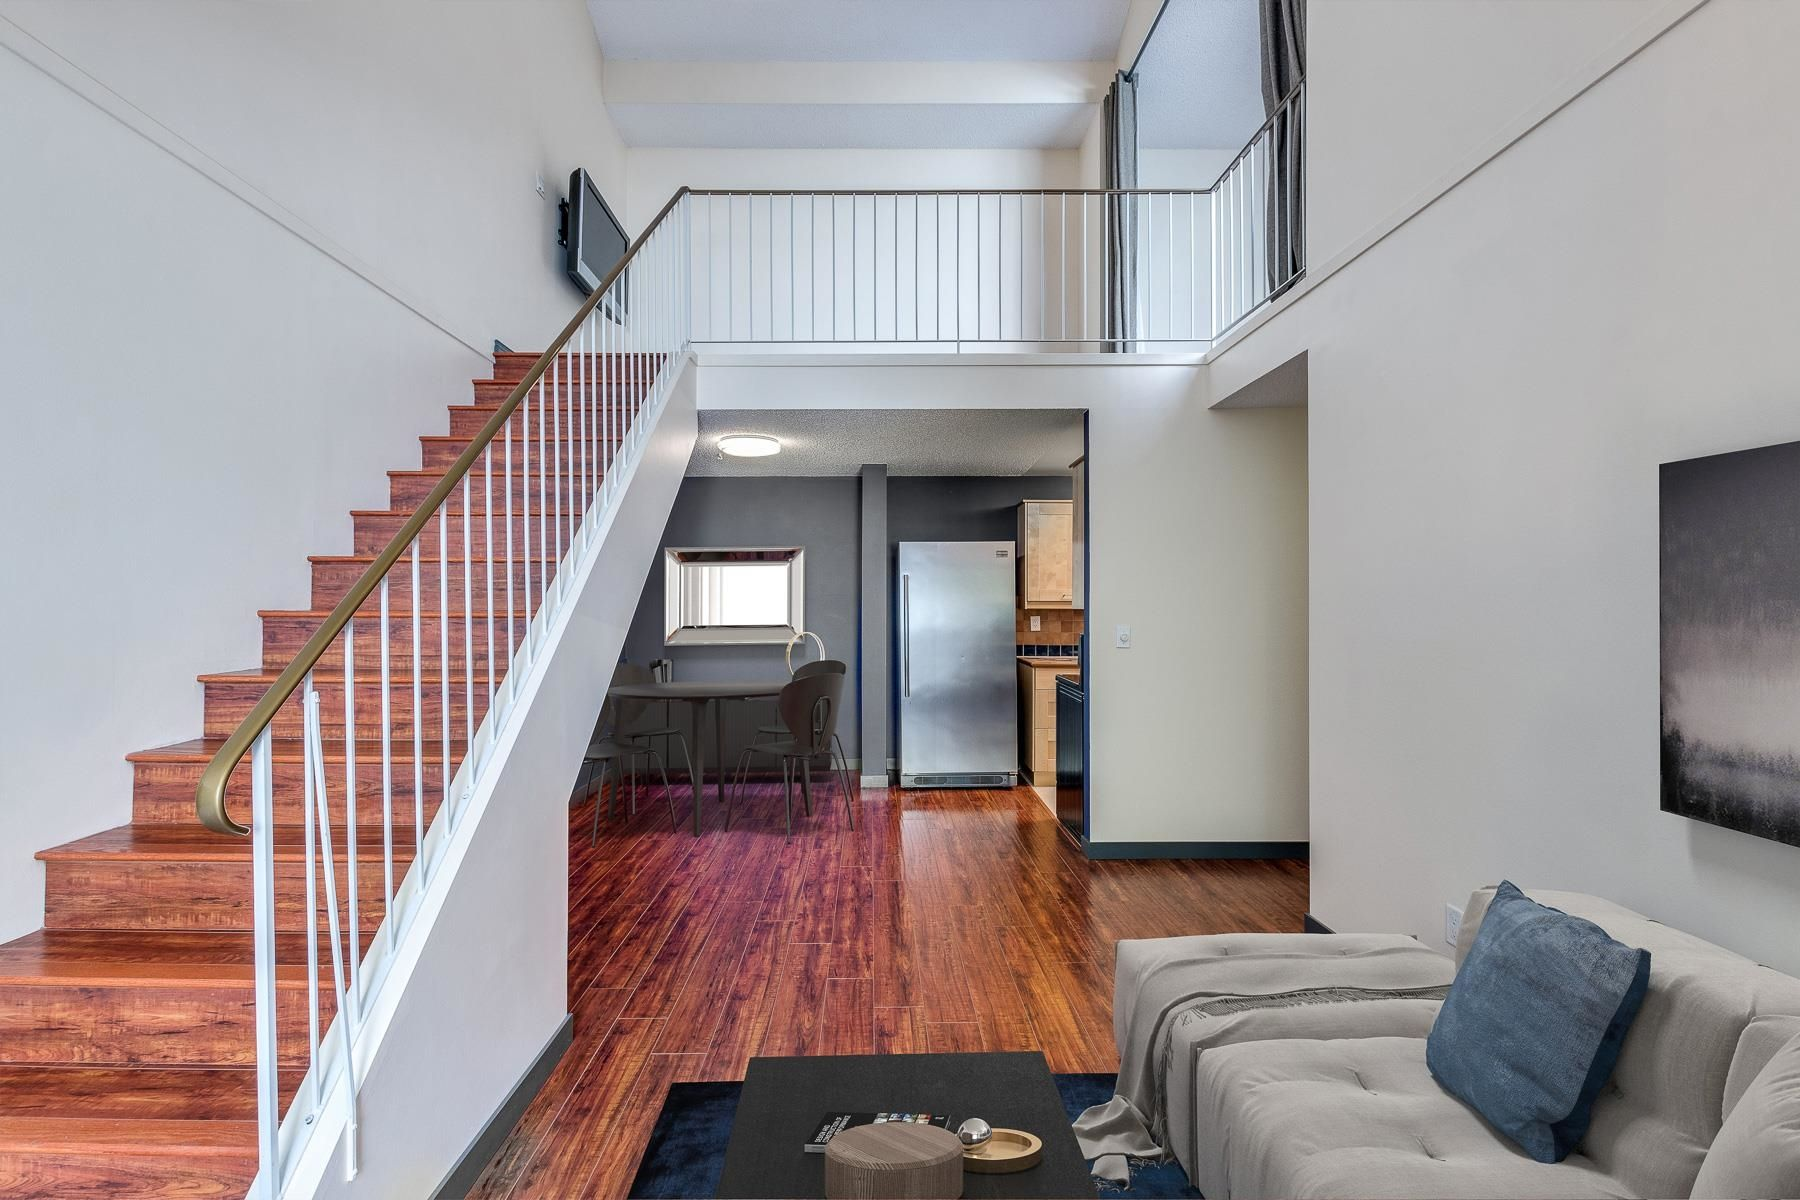 """Main Photo: 301 423 AGNES Street in New Westminster: Downtown NW Condo for sale in """"THE RIDGEVIEW"""" : MLS®# R2623111"""